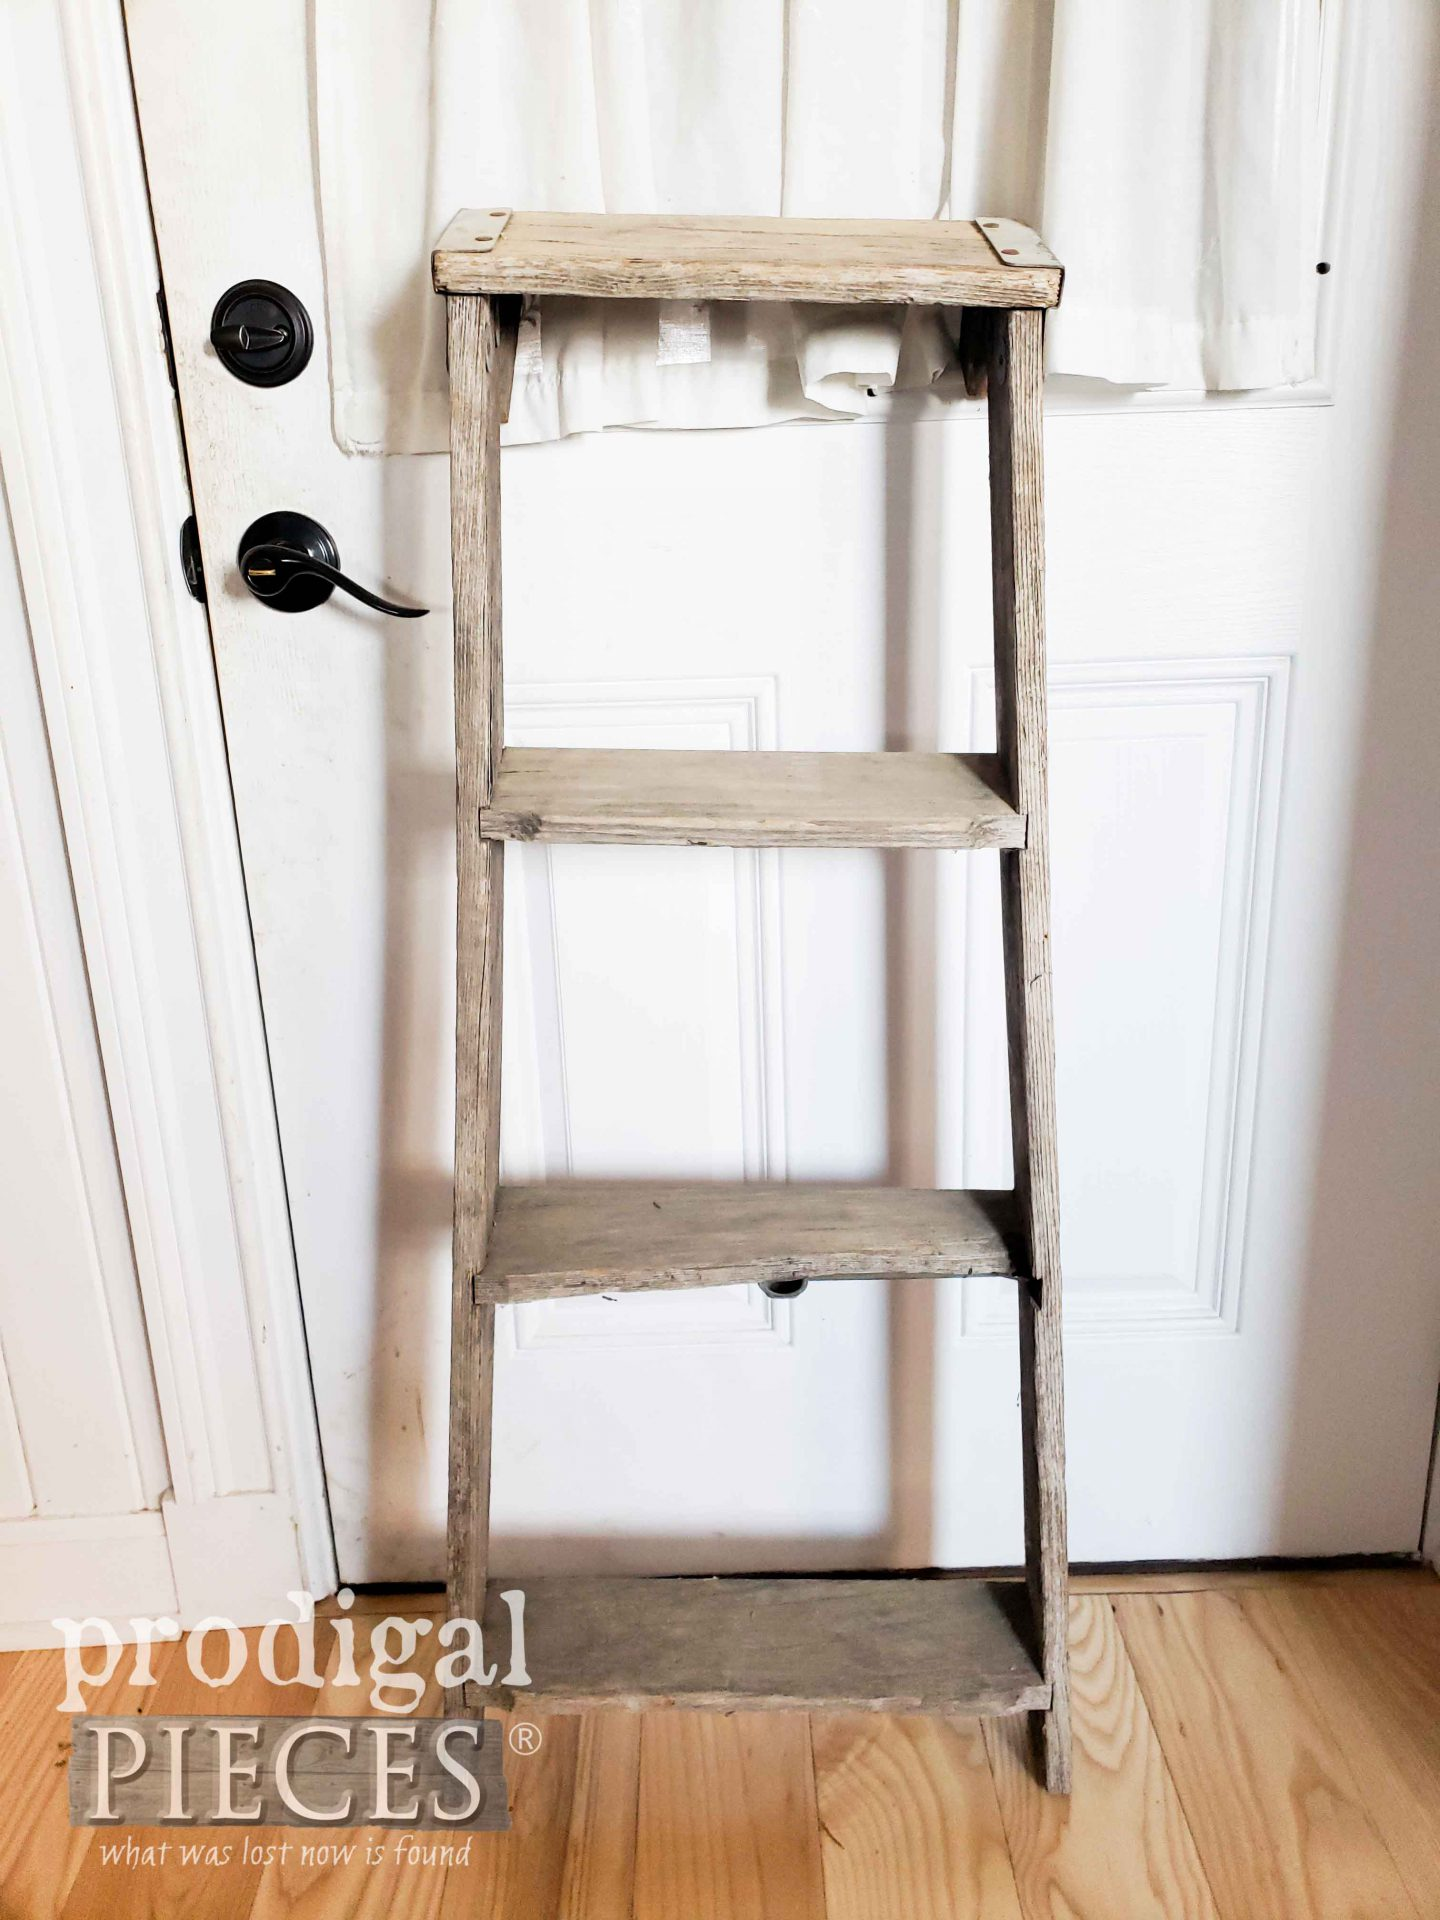 Old Broken Ladder for Upcycled Farmhouse Decor by Larissa of Prodigal Pieces | prodigalpieces.com